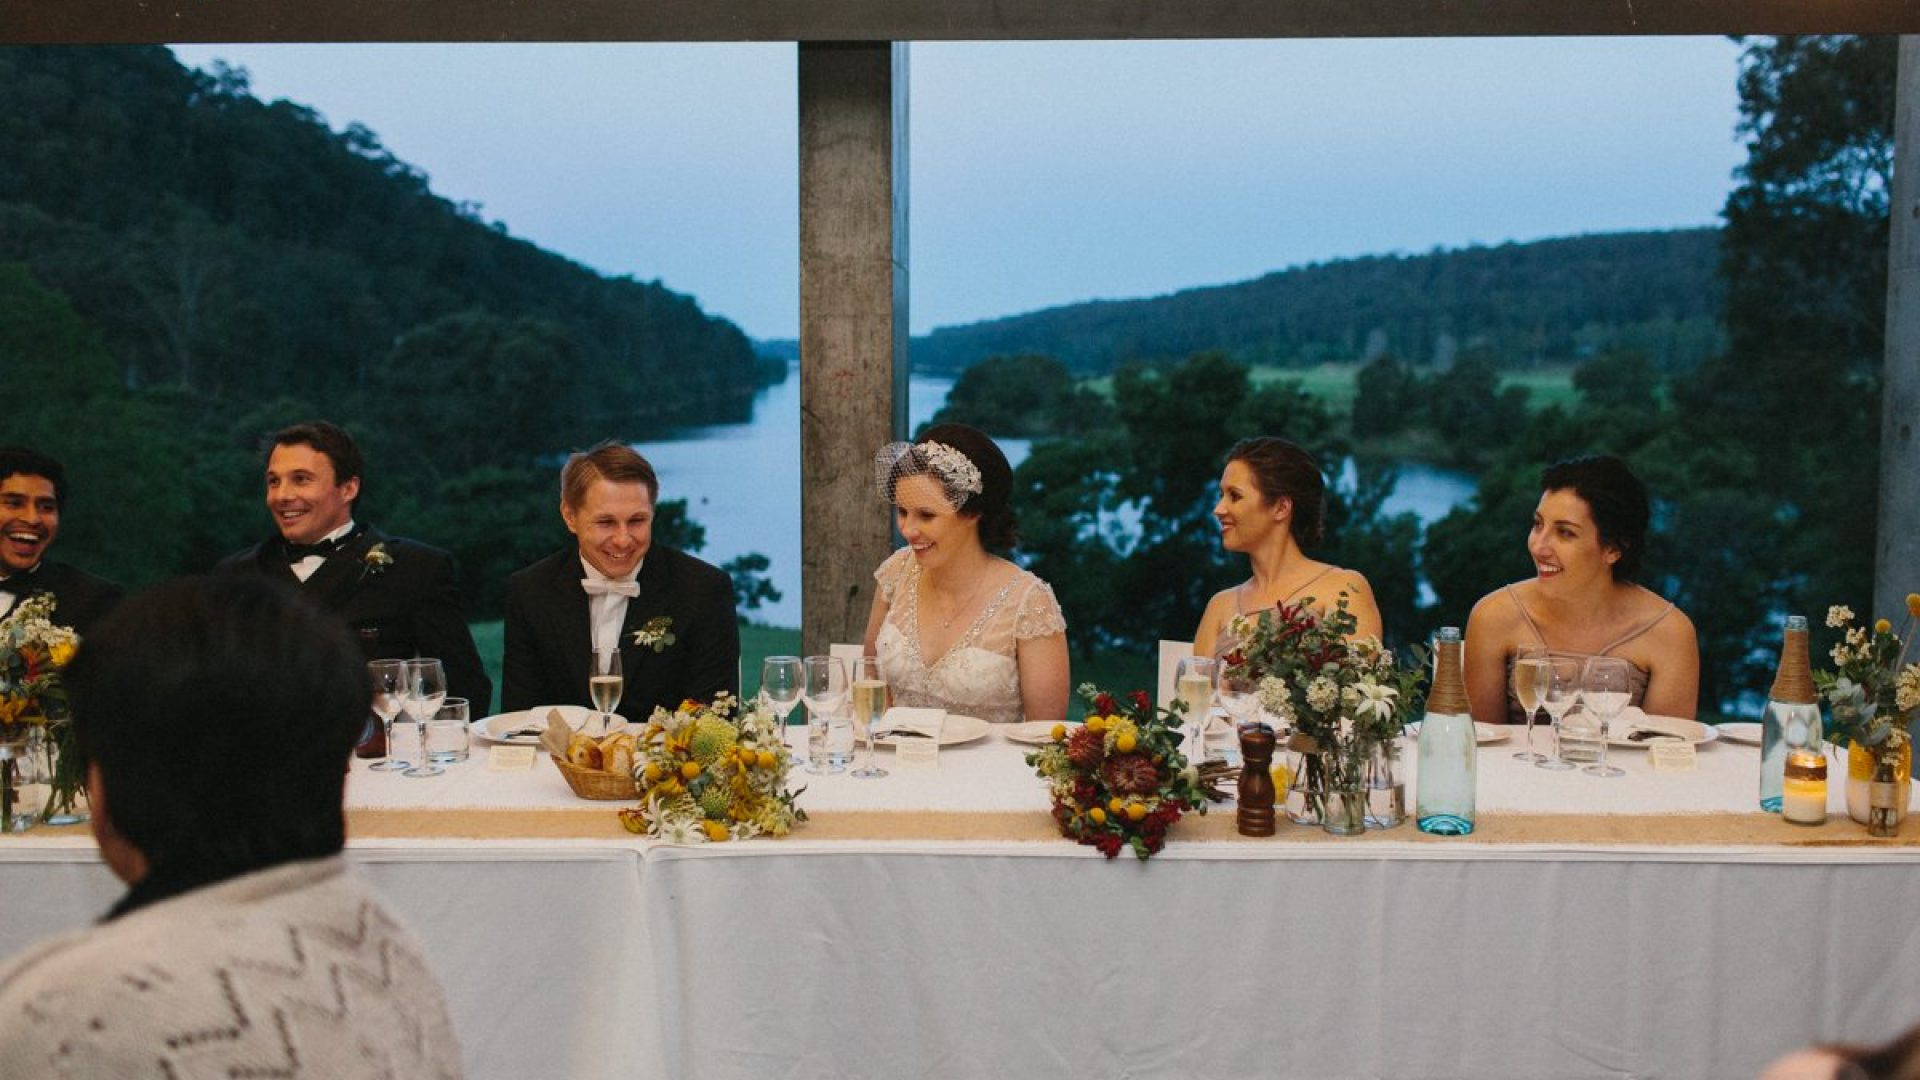 6 people sitting at a long table together. A river can be seen out the window behind them